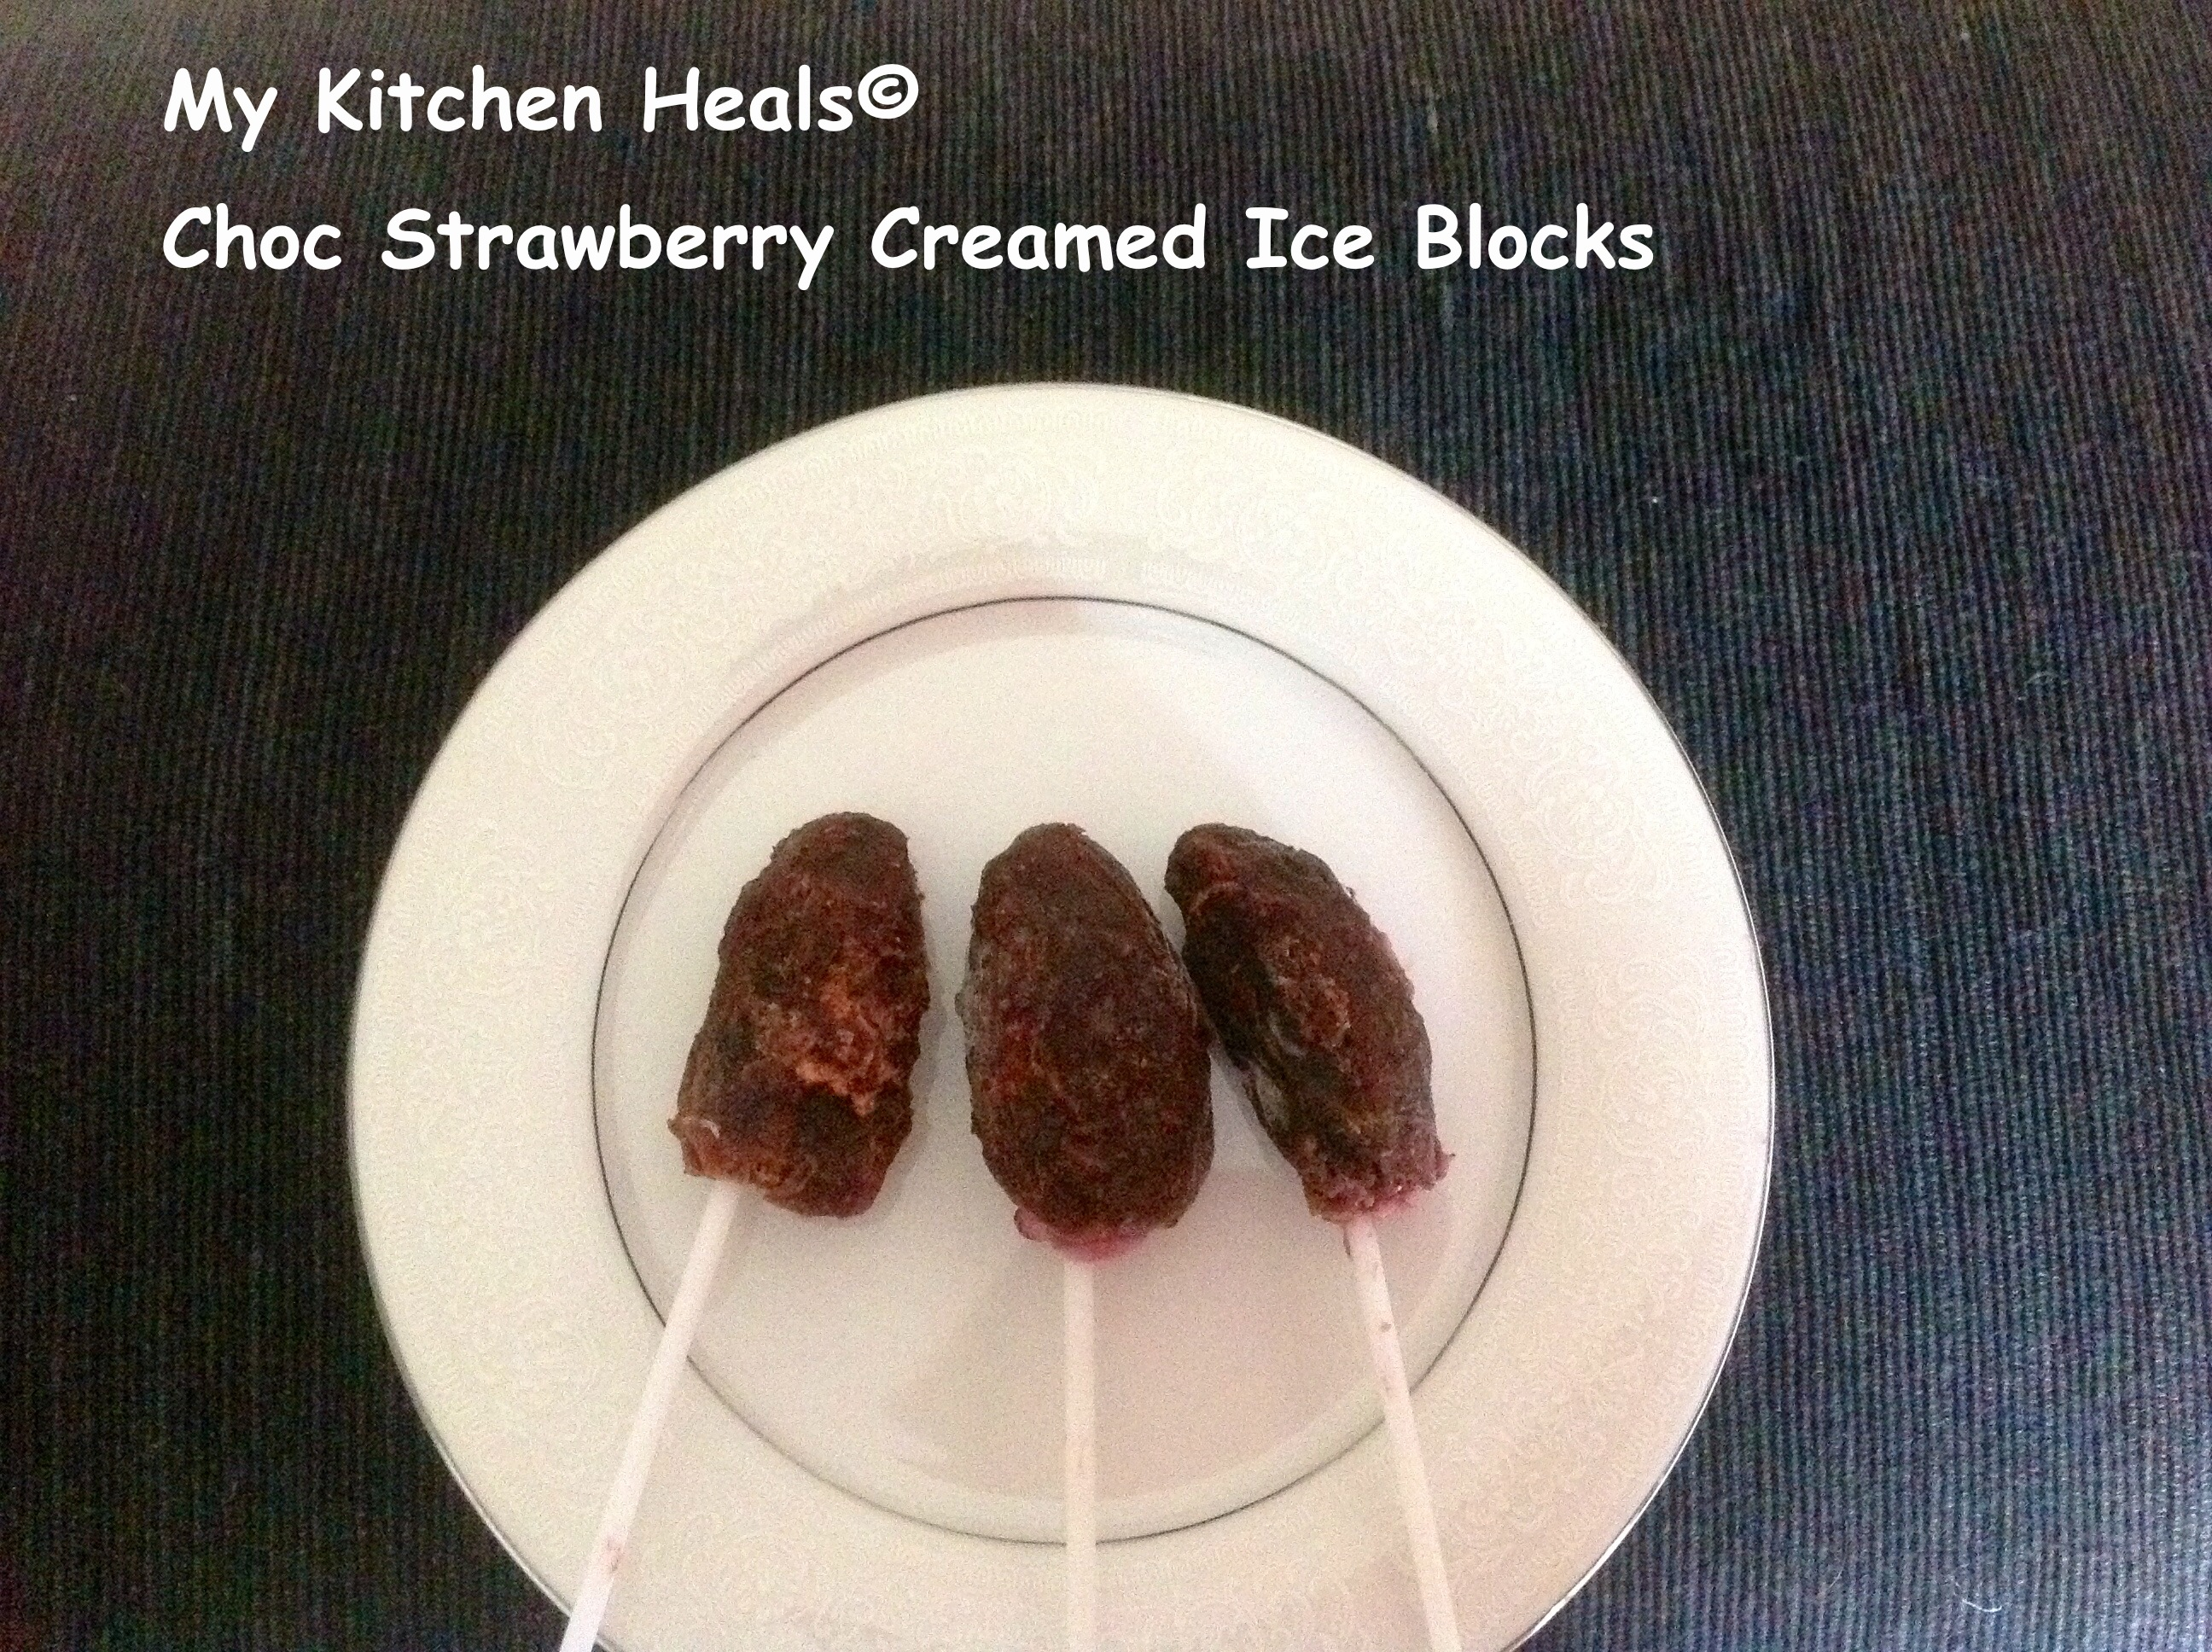 CHOC STRAWBERRY CREAM ICE BLOCKS